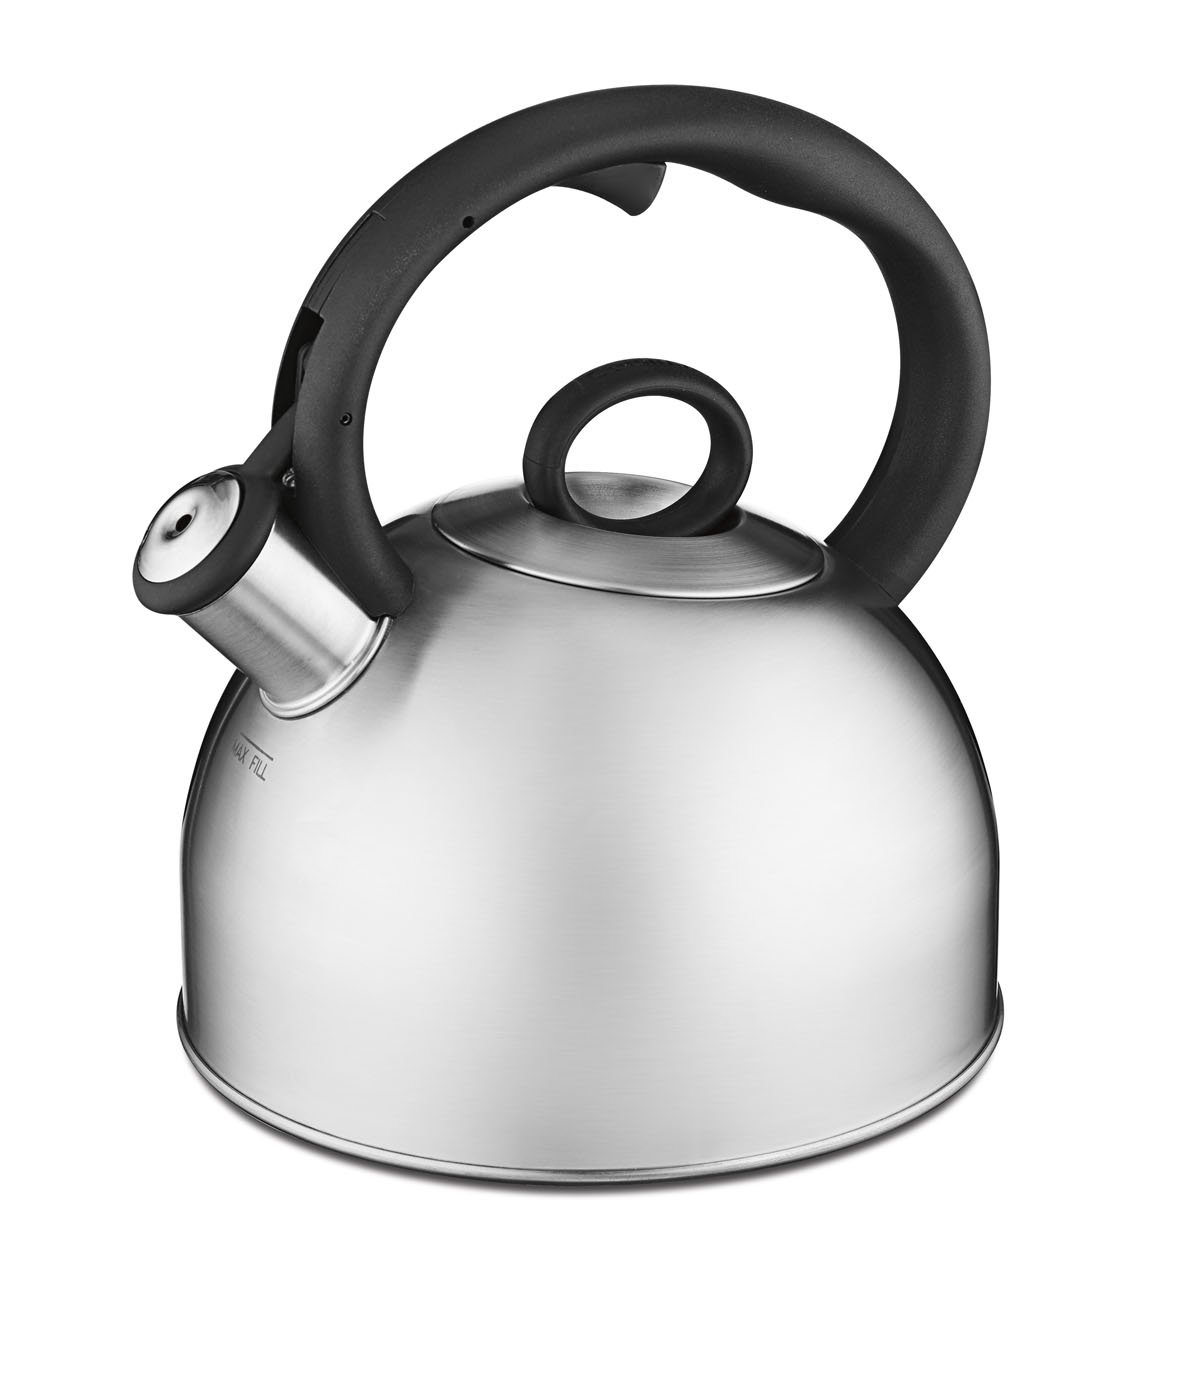 Cuisinart CTK-SS17 Aura Stainless Steel Stovetop Teakettle, 2QT. by Cuisinart (Image #1)